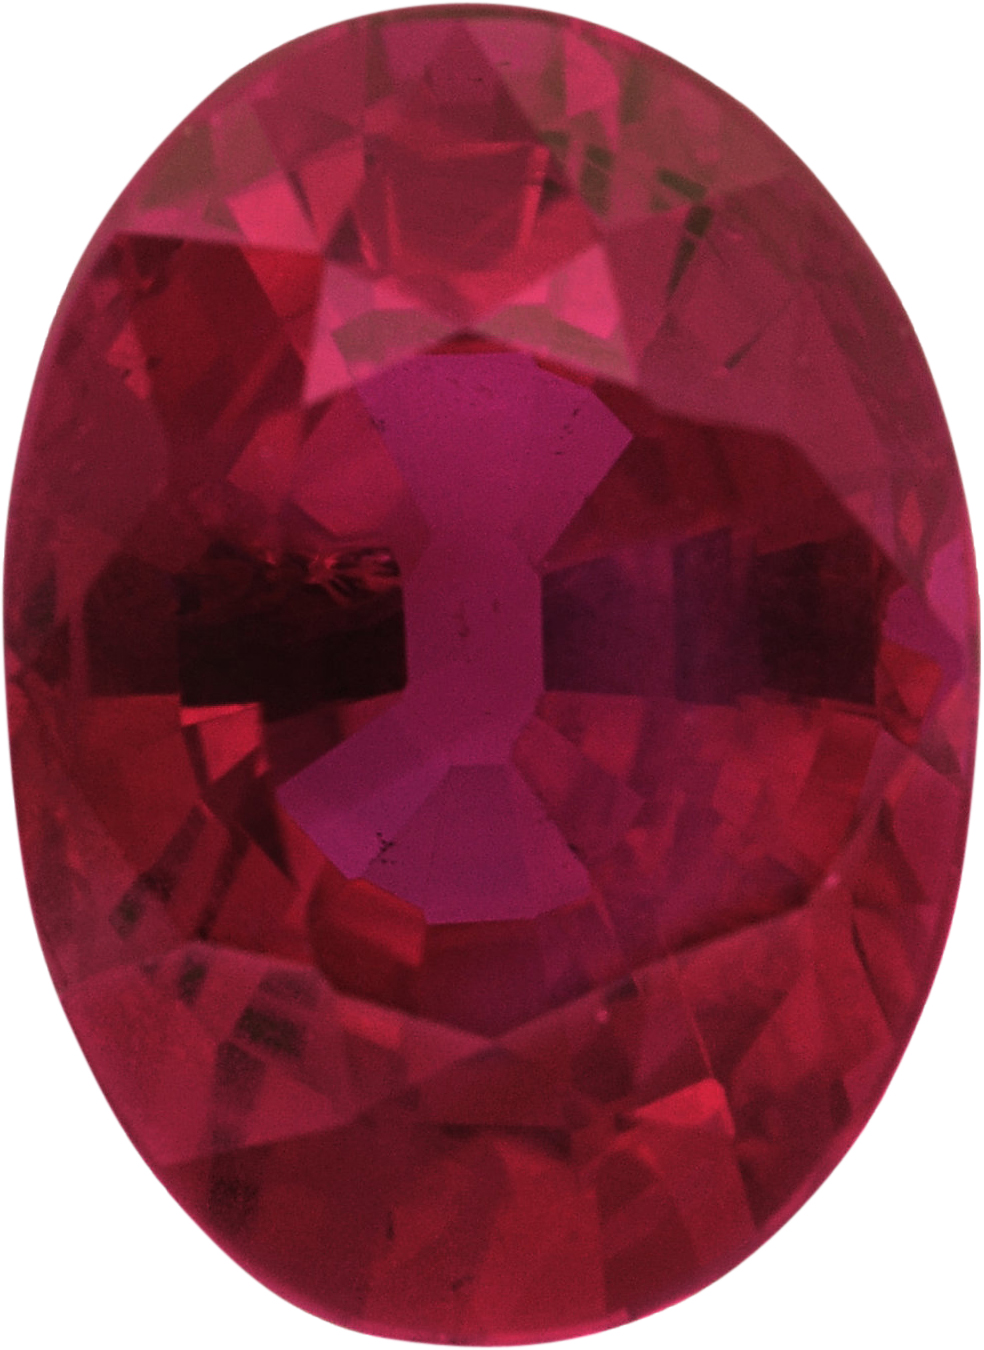 Exceptional Loose Ruby Gem in Oval Cut,  Red Color, 6.75 x 4.92 mm, 1.06 carats